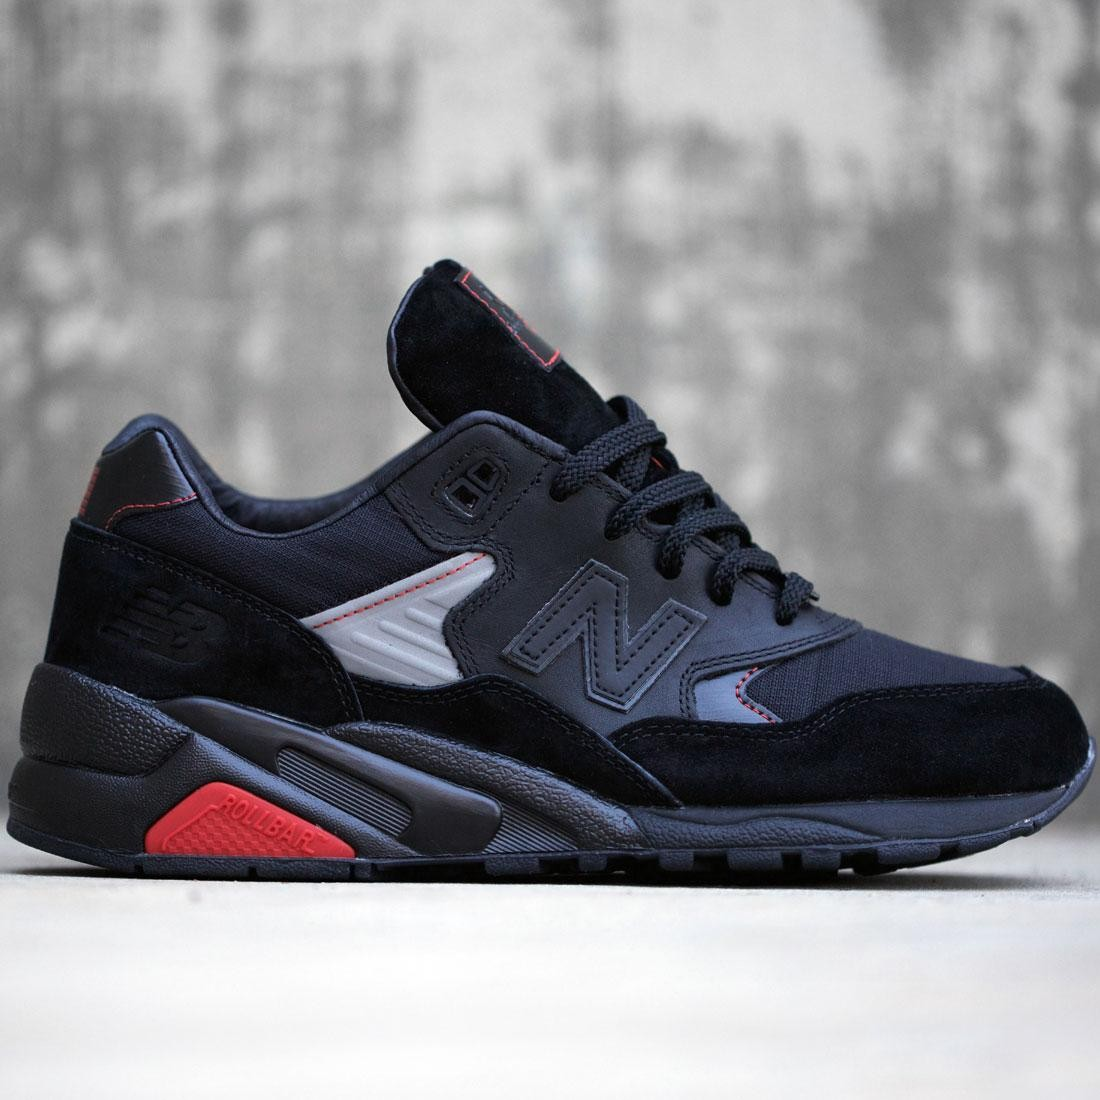 92bc88ace1a11 Cheap new balance 580 black red Buy Online >OFF43% Discounted